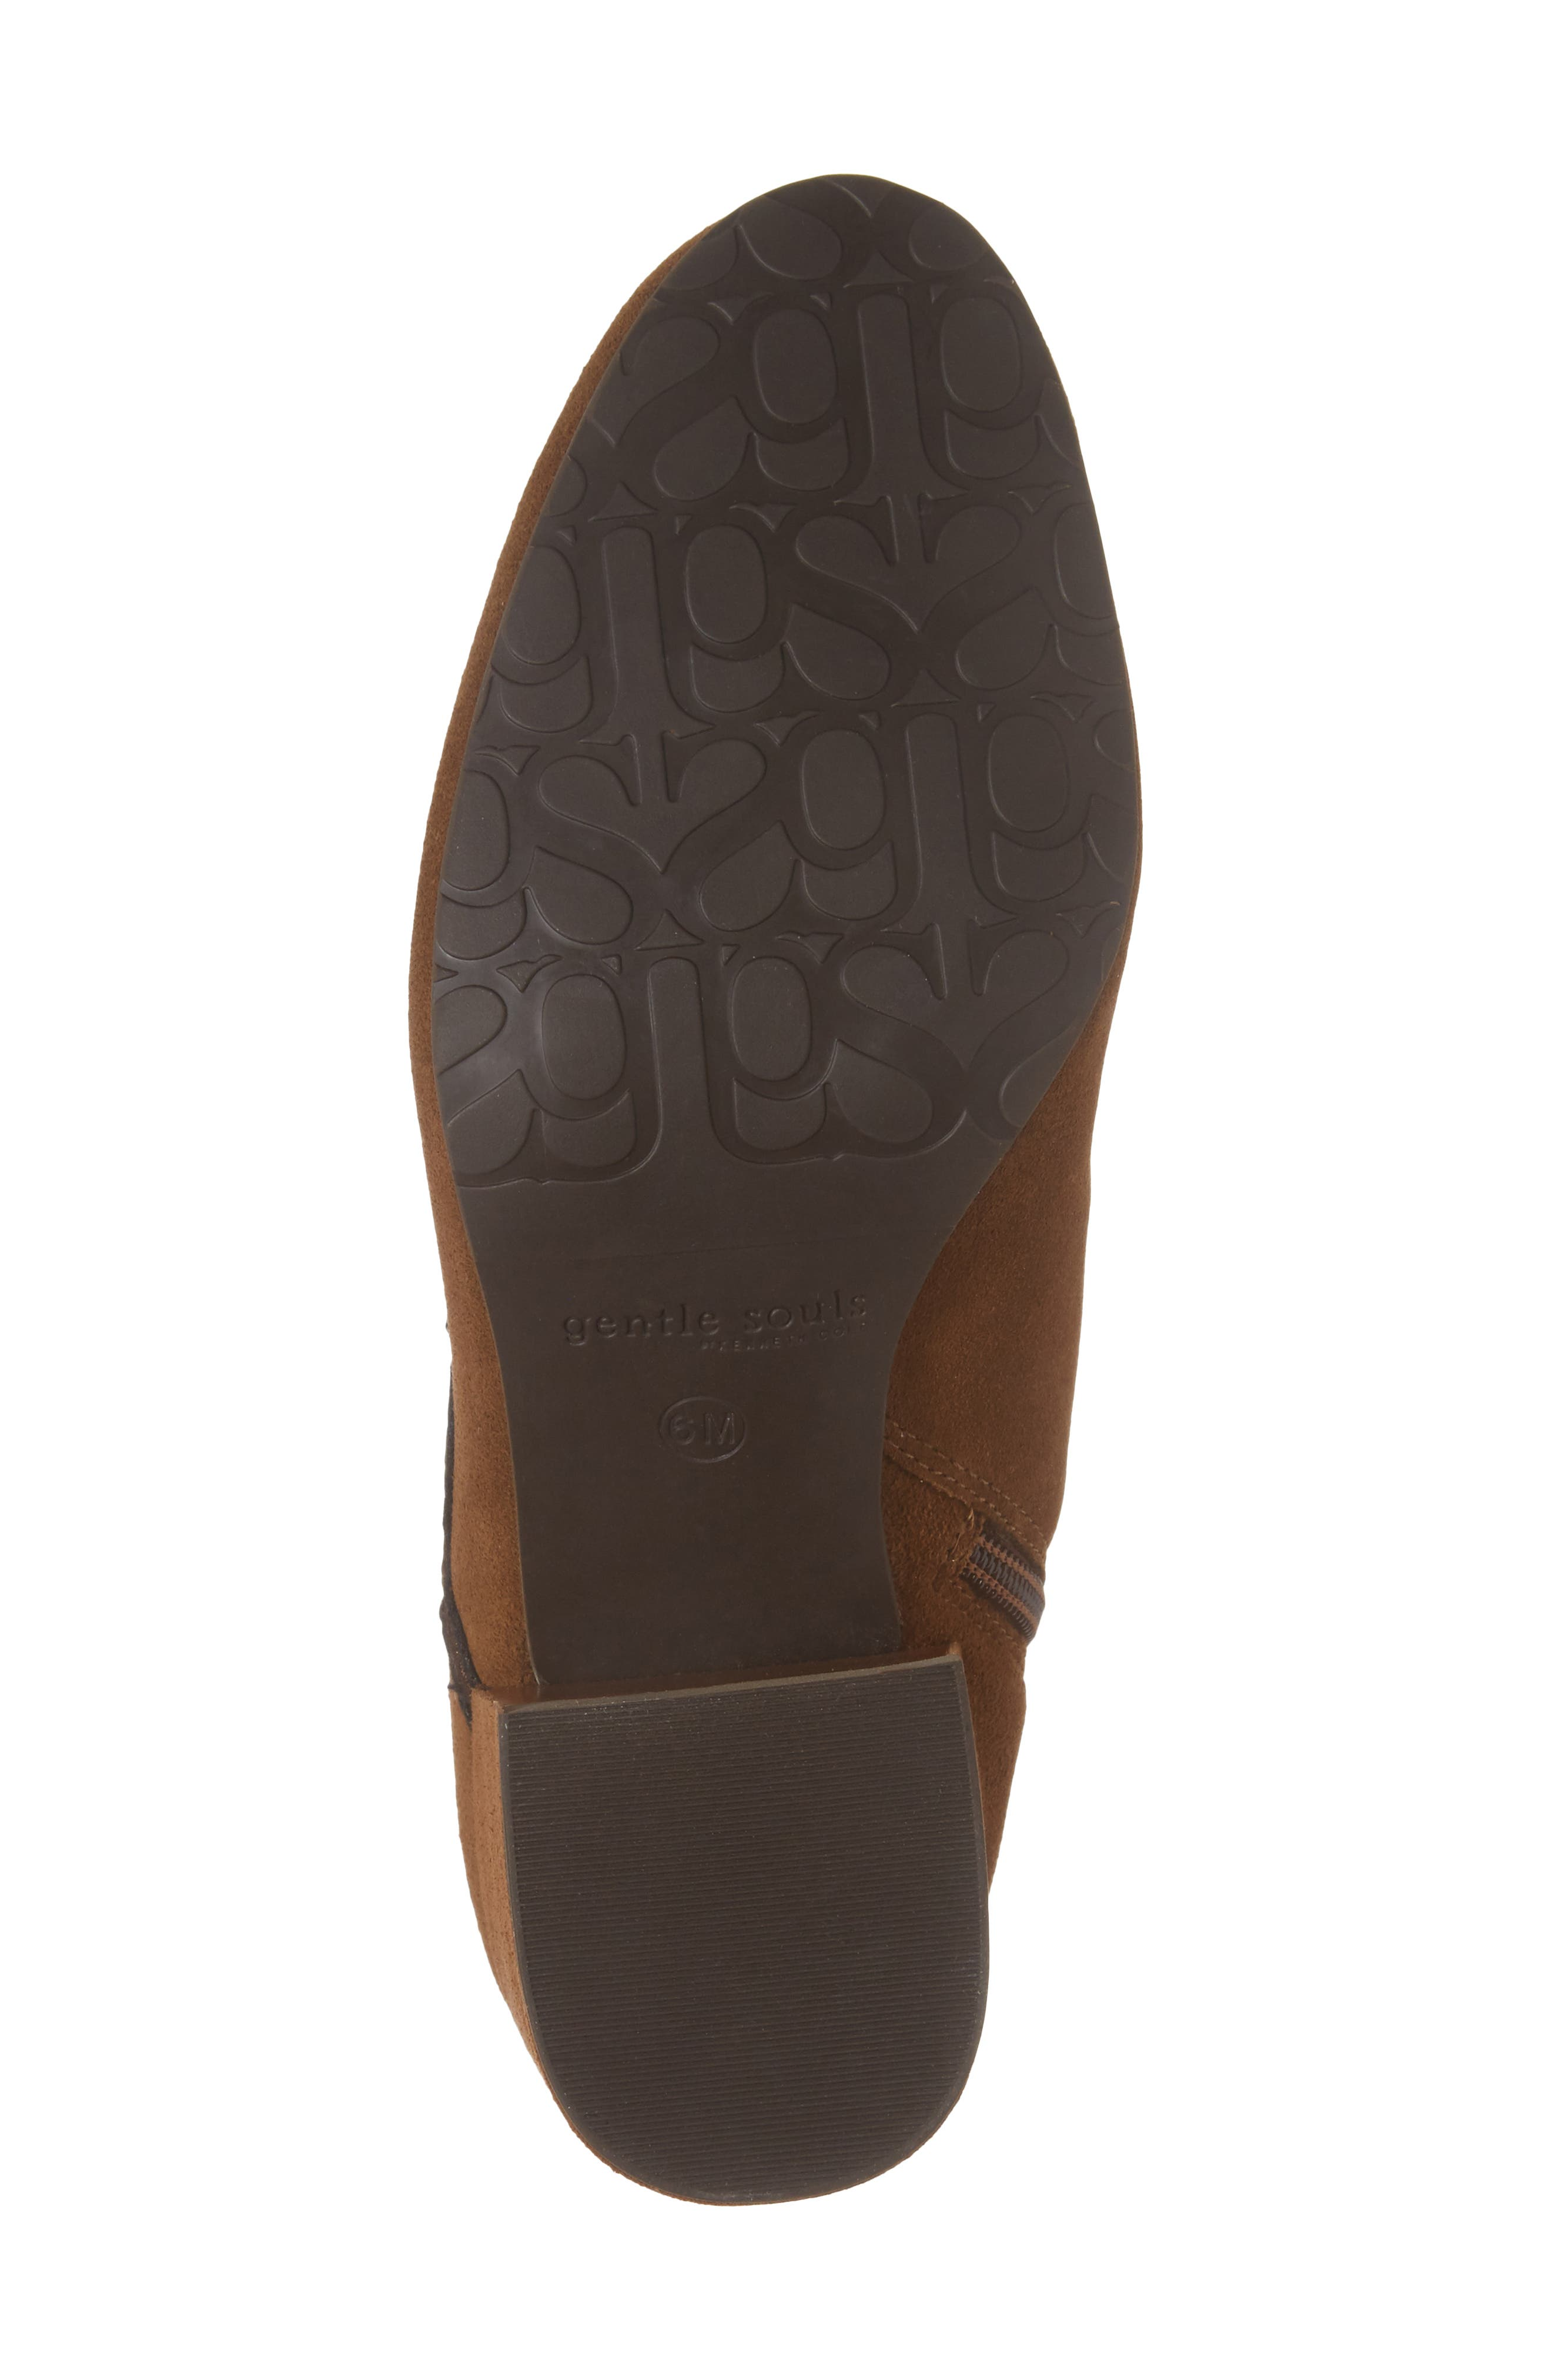 GENTLE SOULS BY KENNETH COLE, Blaise Patches Bootie, Alternate thumbnail 6, color, WALNUT SUEDE